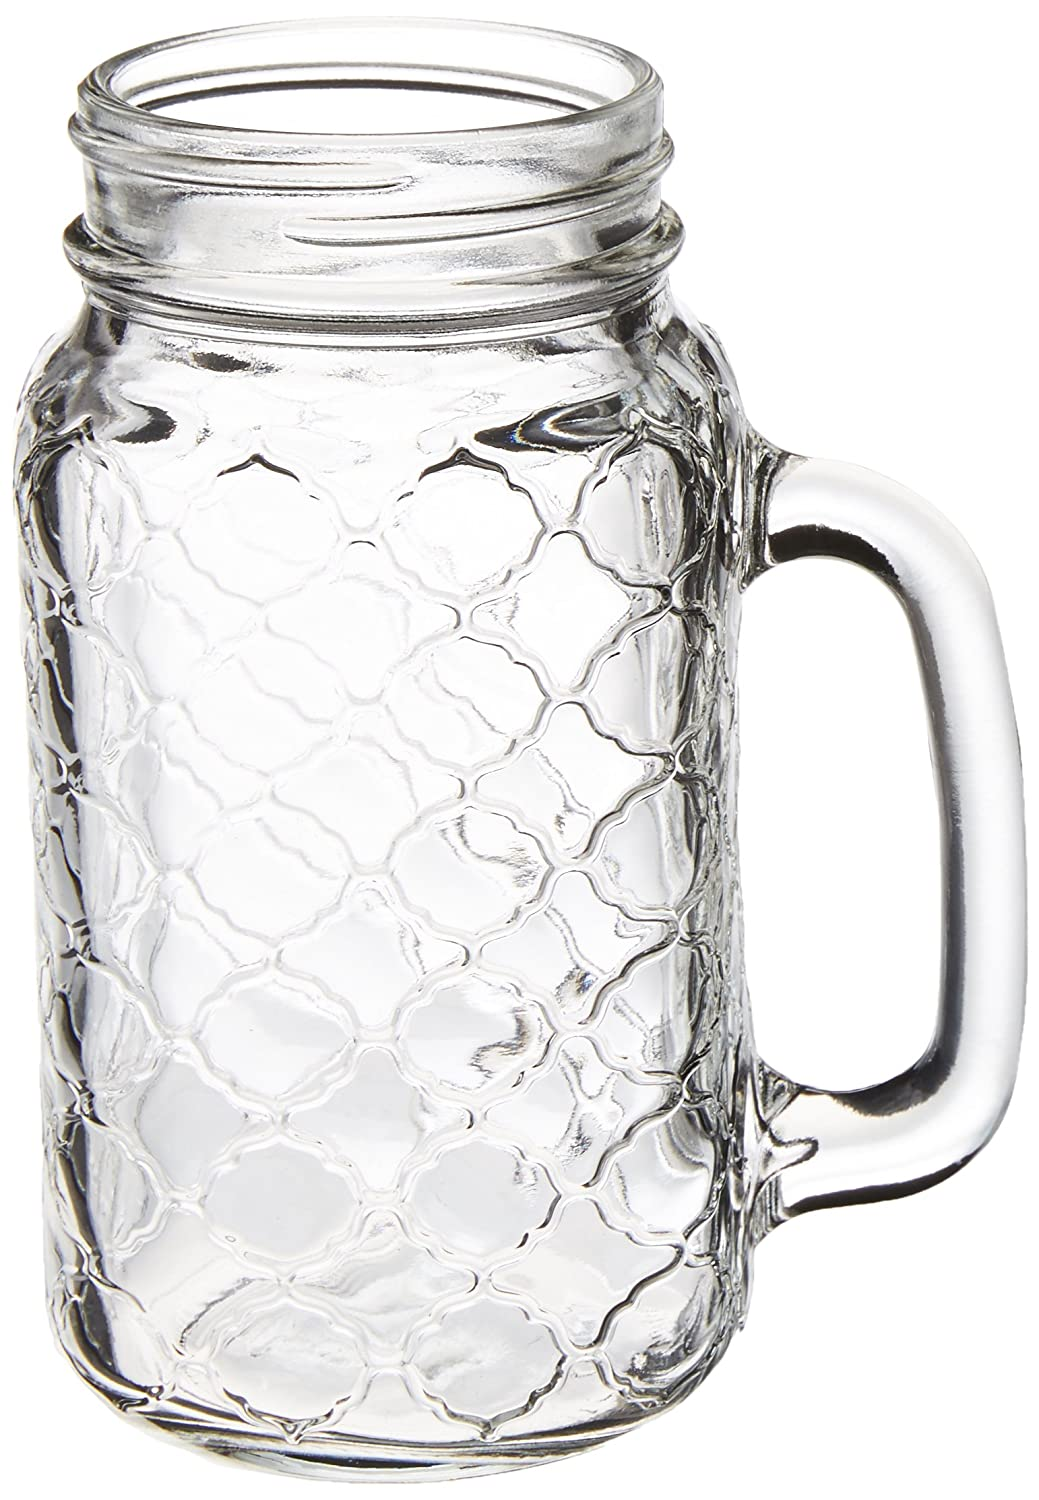 Circleware 68122 Garden Gate Yorkshire Mason Jar Mugs with Glass Handles, Set of 4 Beverage, Water, Juice, Beer Glassware Drinking Cups, 24 oz